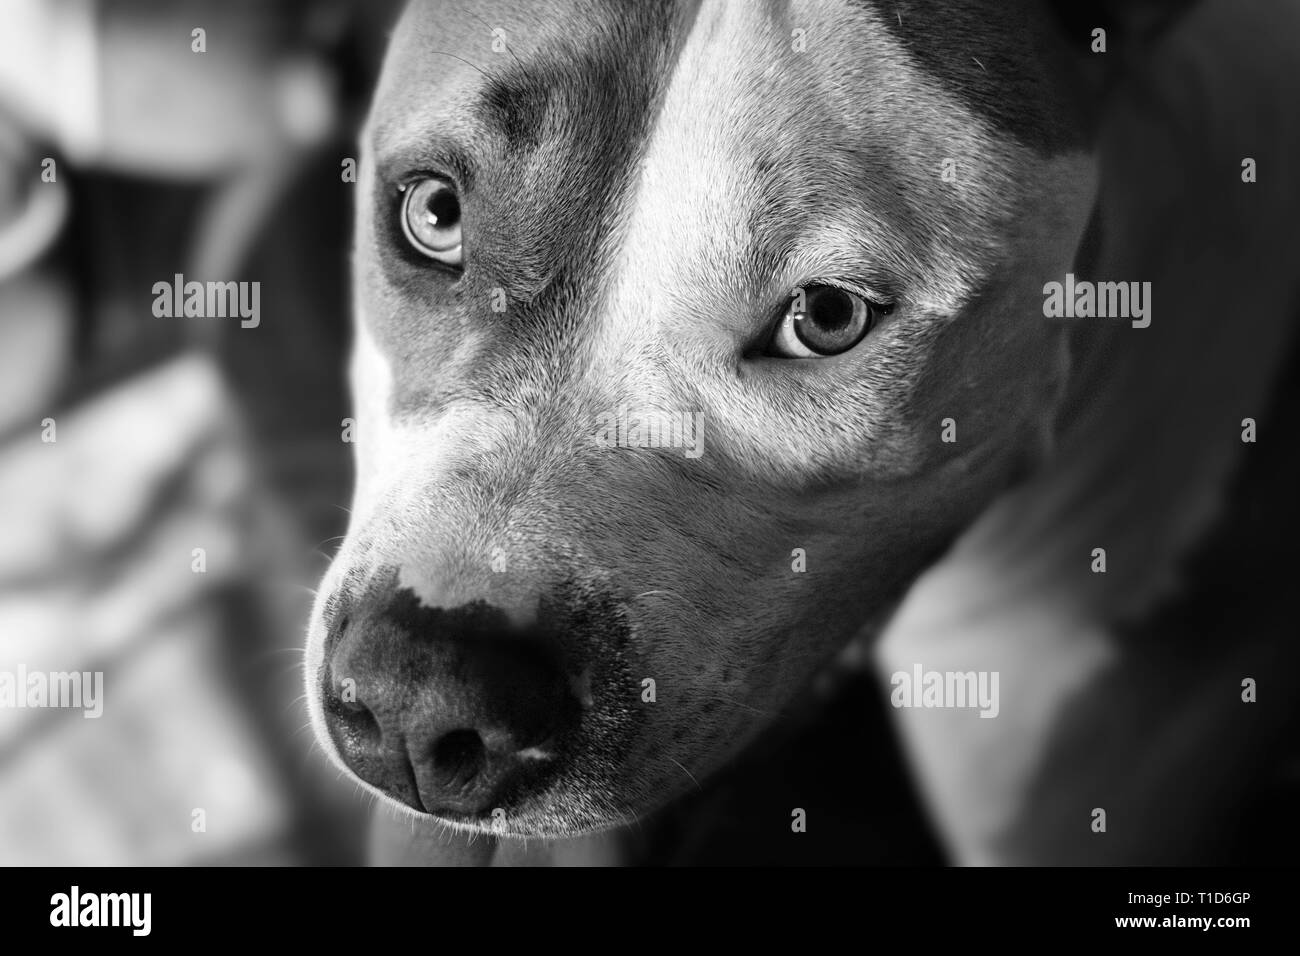 A mixed breed pit bull (Canis lupus familiaris) looks at the camera with loving eyes. - Stock Image